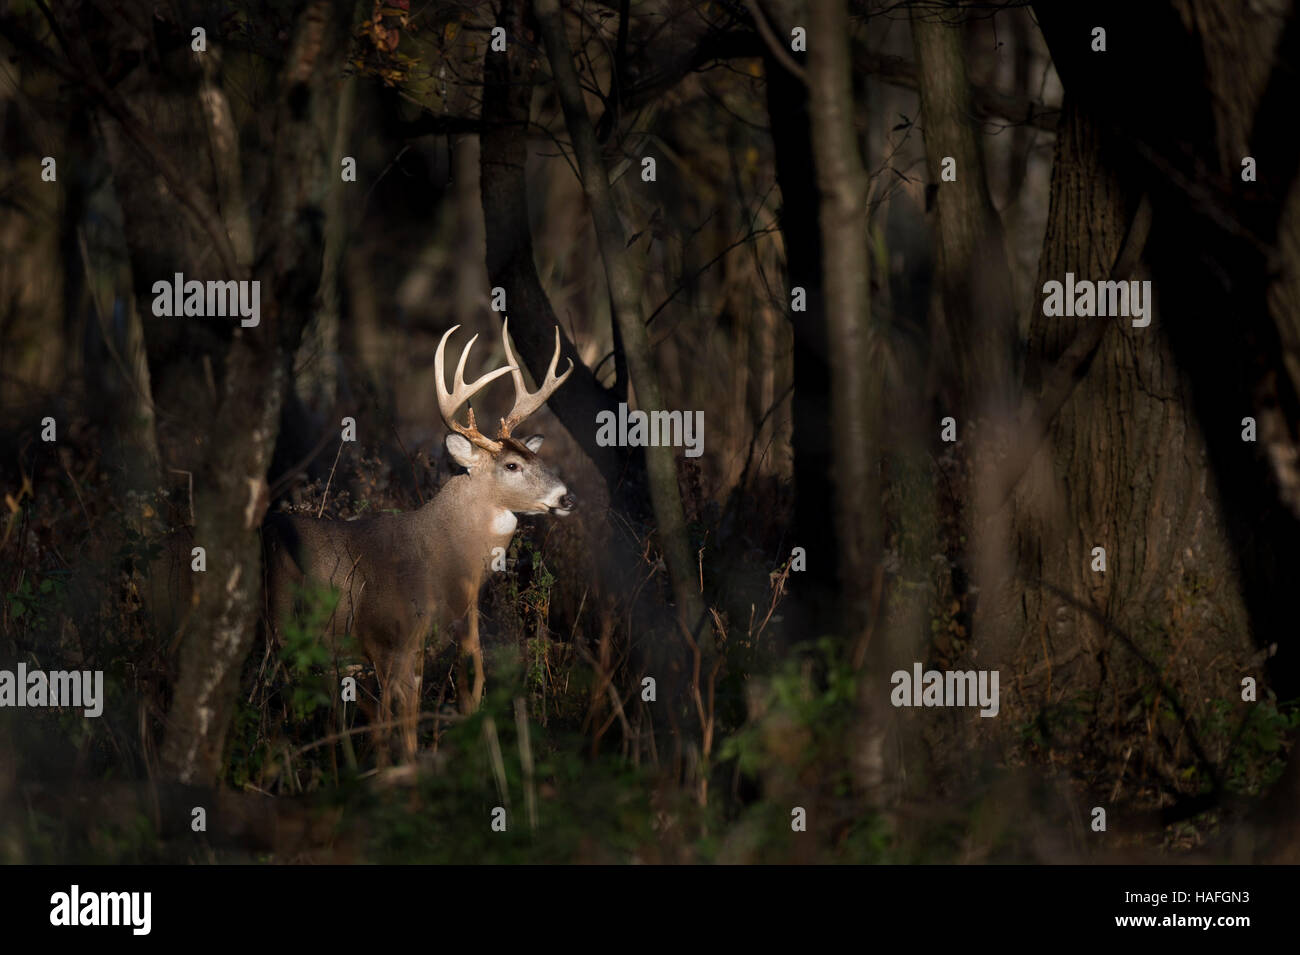 A large Whitetail Deer buck stands in a spotlight of sun in the woods early one morning. - Stock Image